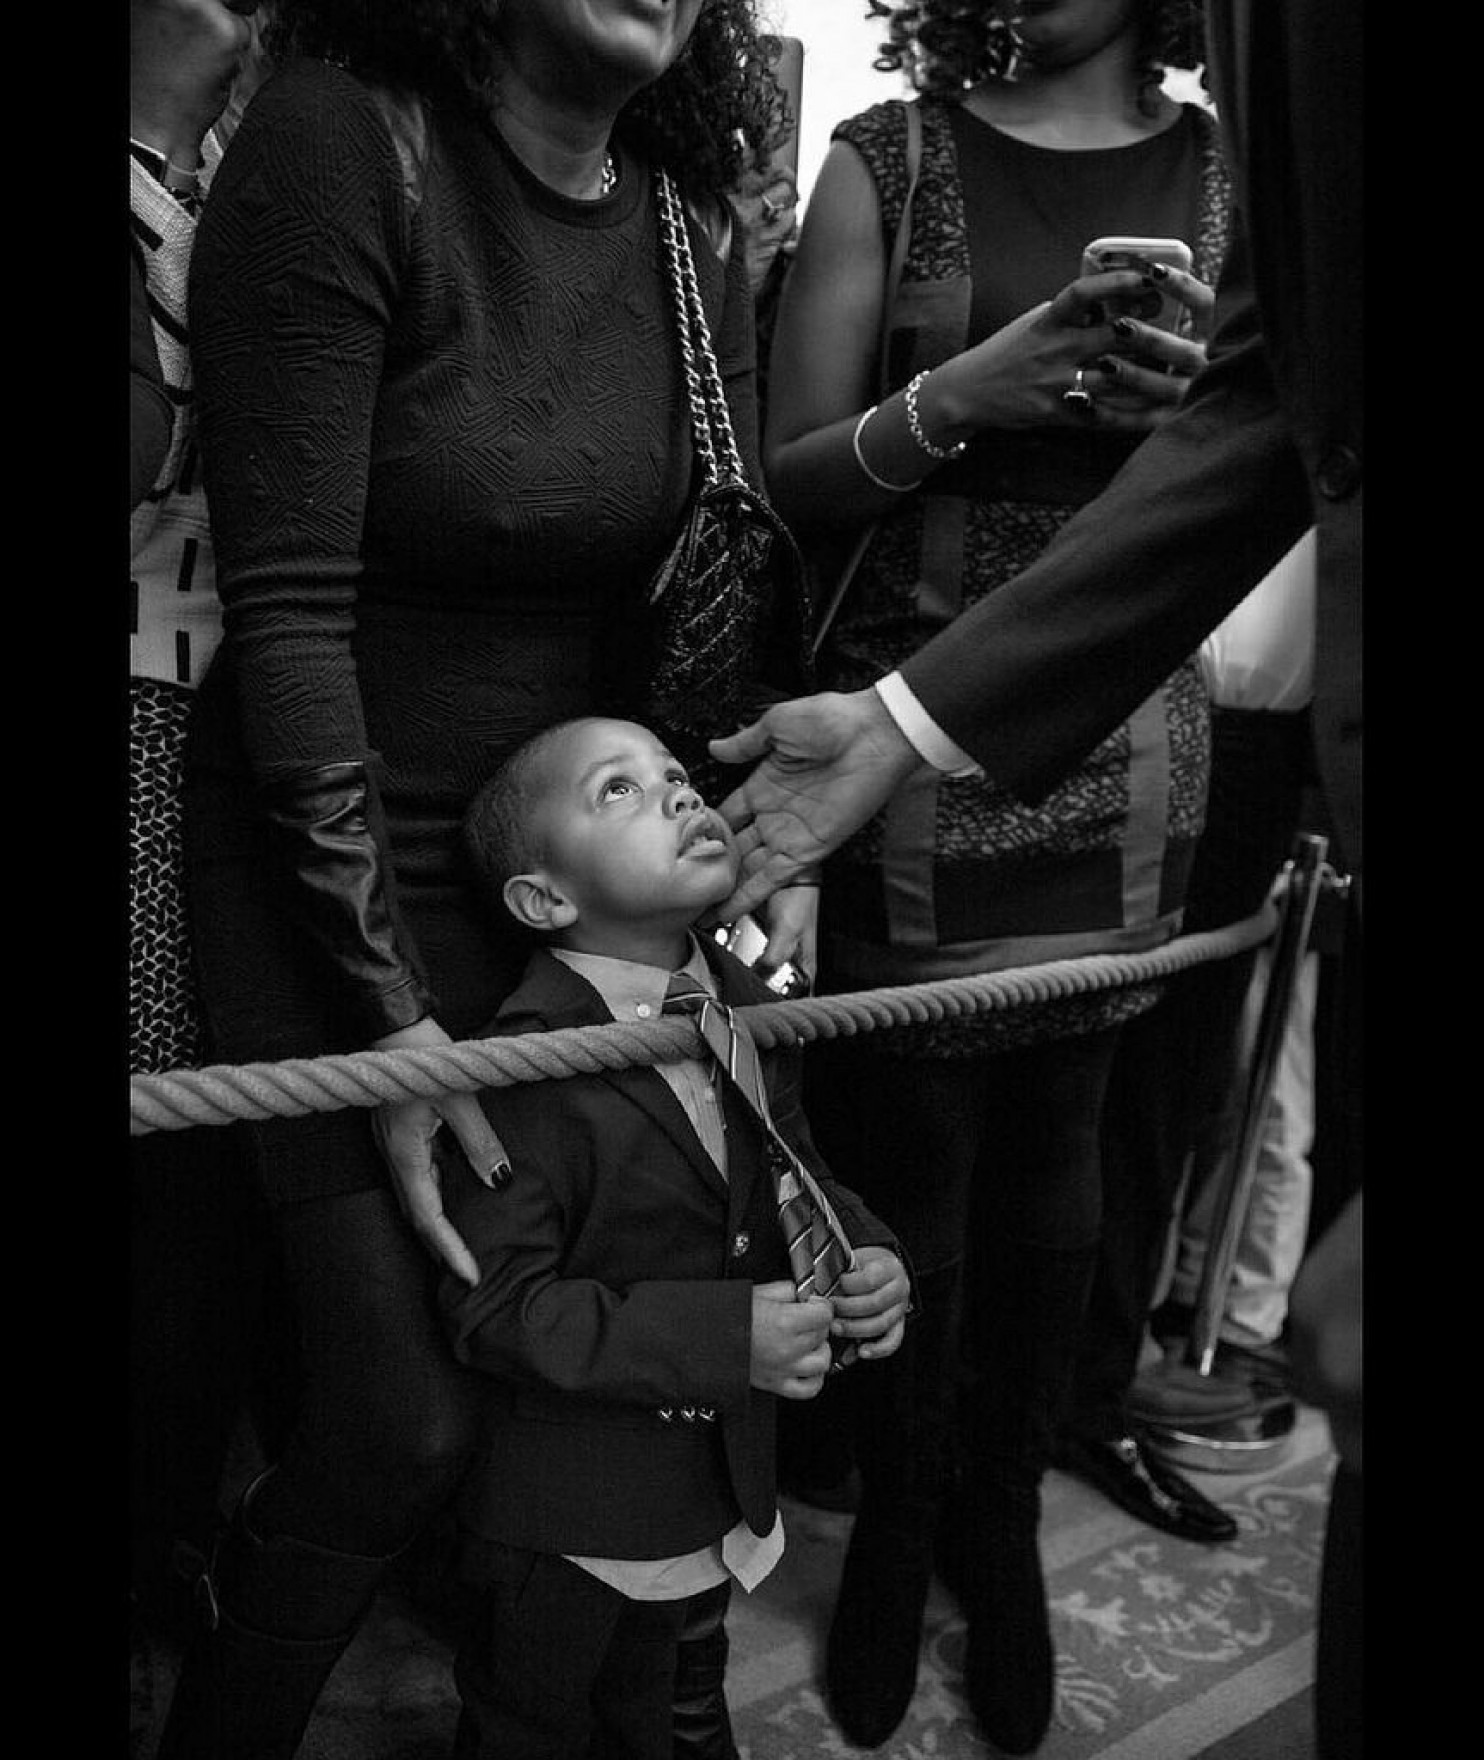 Clark Reynolds, 3, is greeted by President Obama during a Black History Month Celebration held Feb.18, 2016, at the White House in Washington, D.C. (Pete Souza/White House)